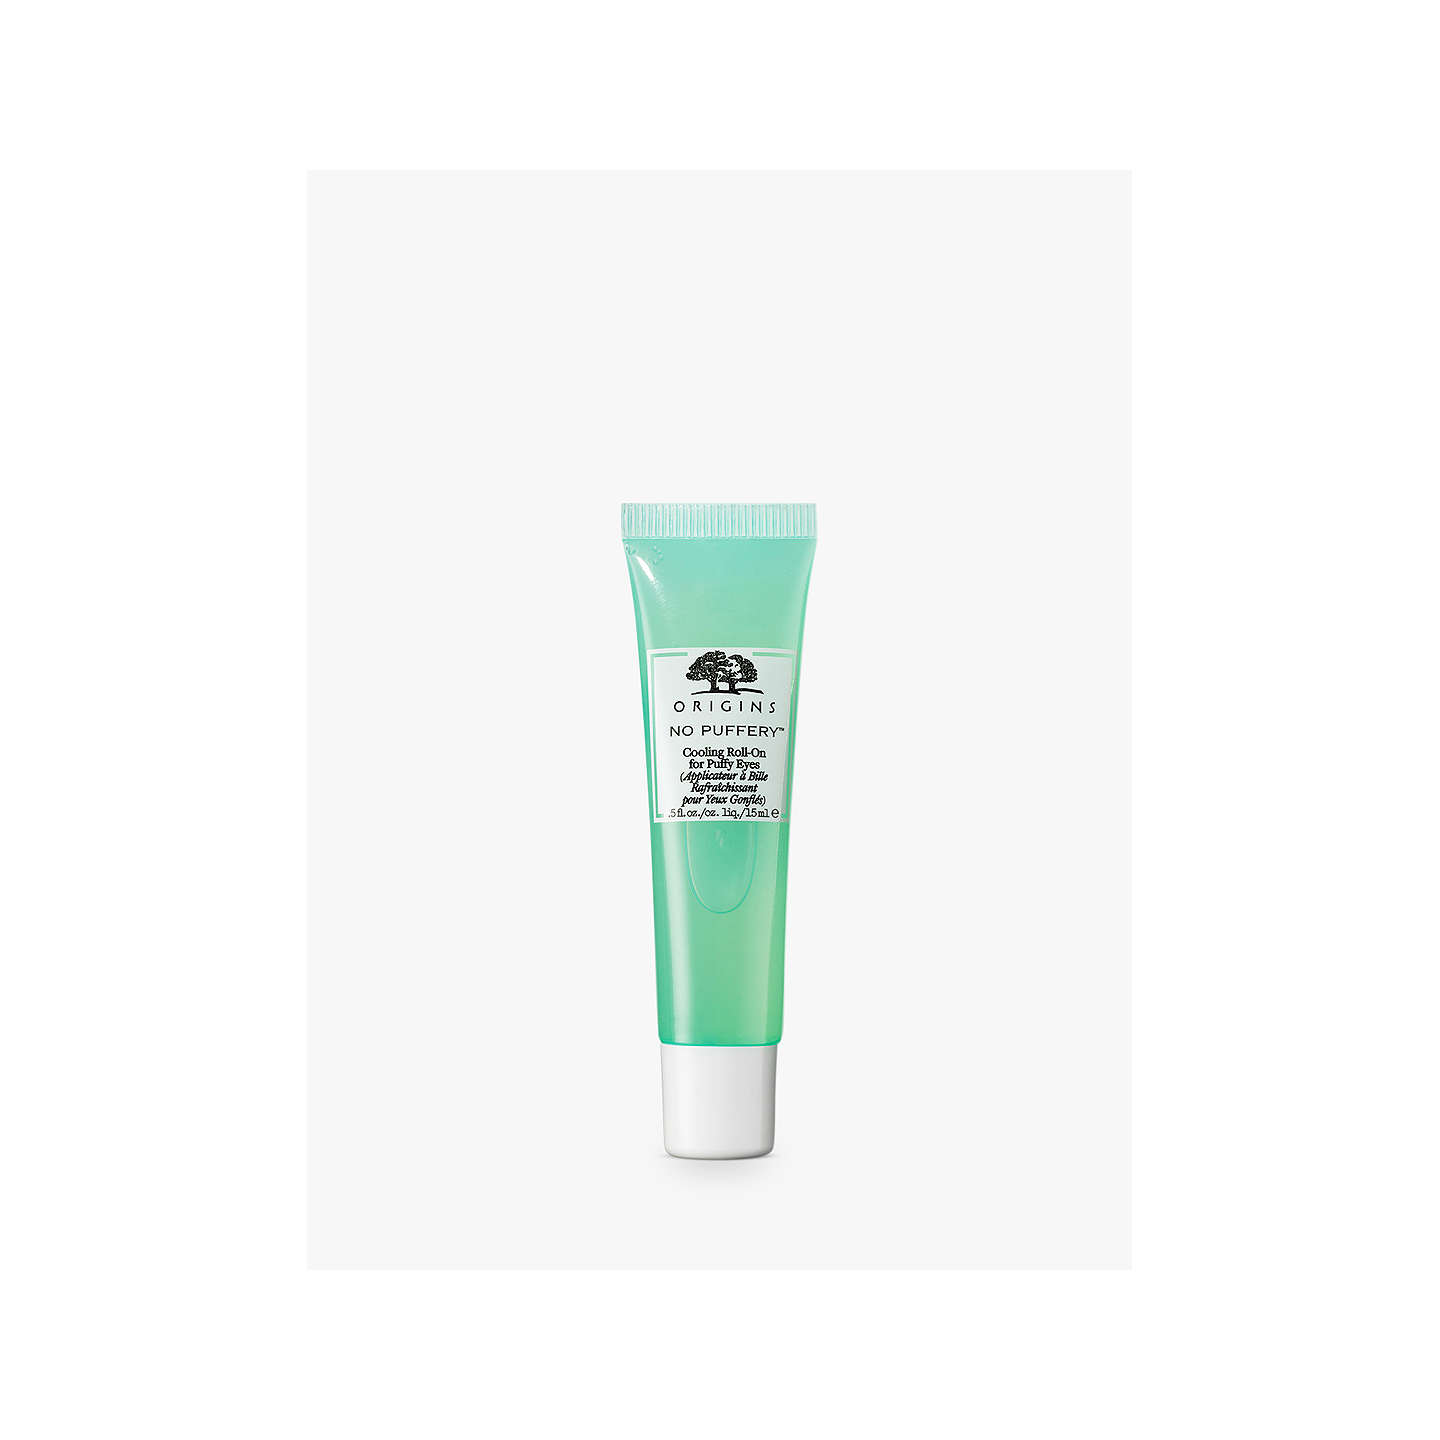 BuyOrigins No Puffery™ Cooling Roll-On for Puffy Eyes, 15ml Online at johnlewis.com